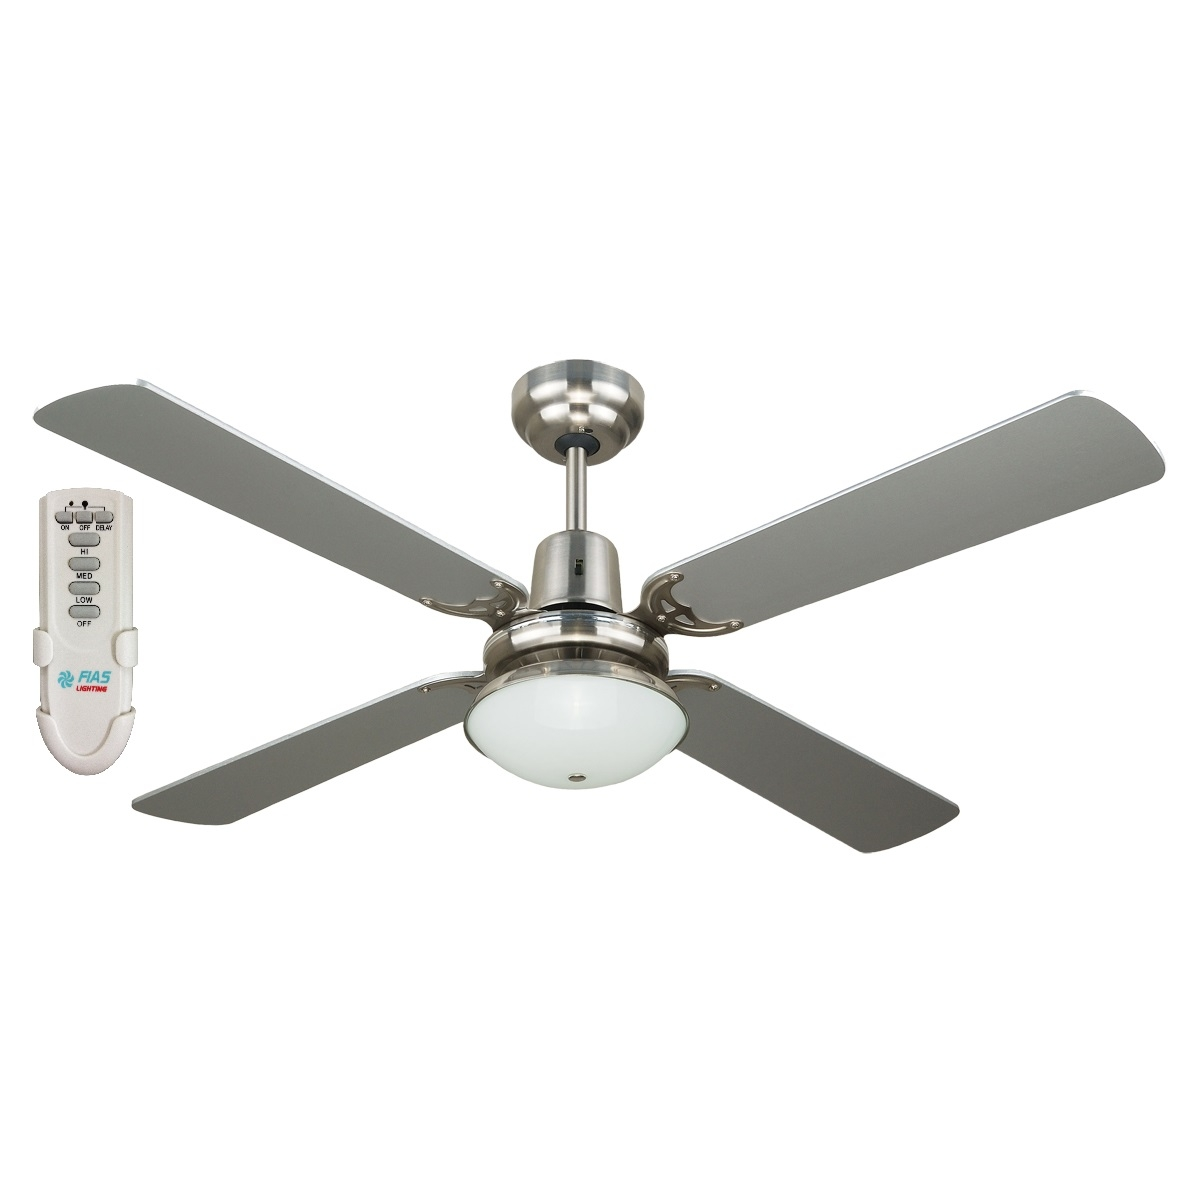 Fias Ramo 4 Blade Ceiling Fan With Light And Remote Control